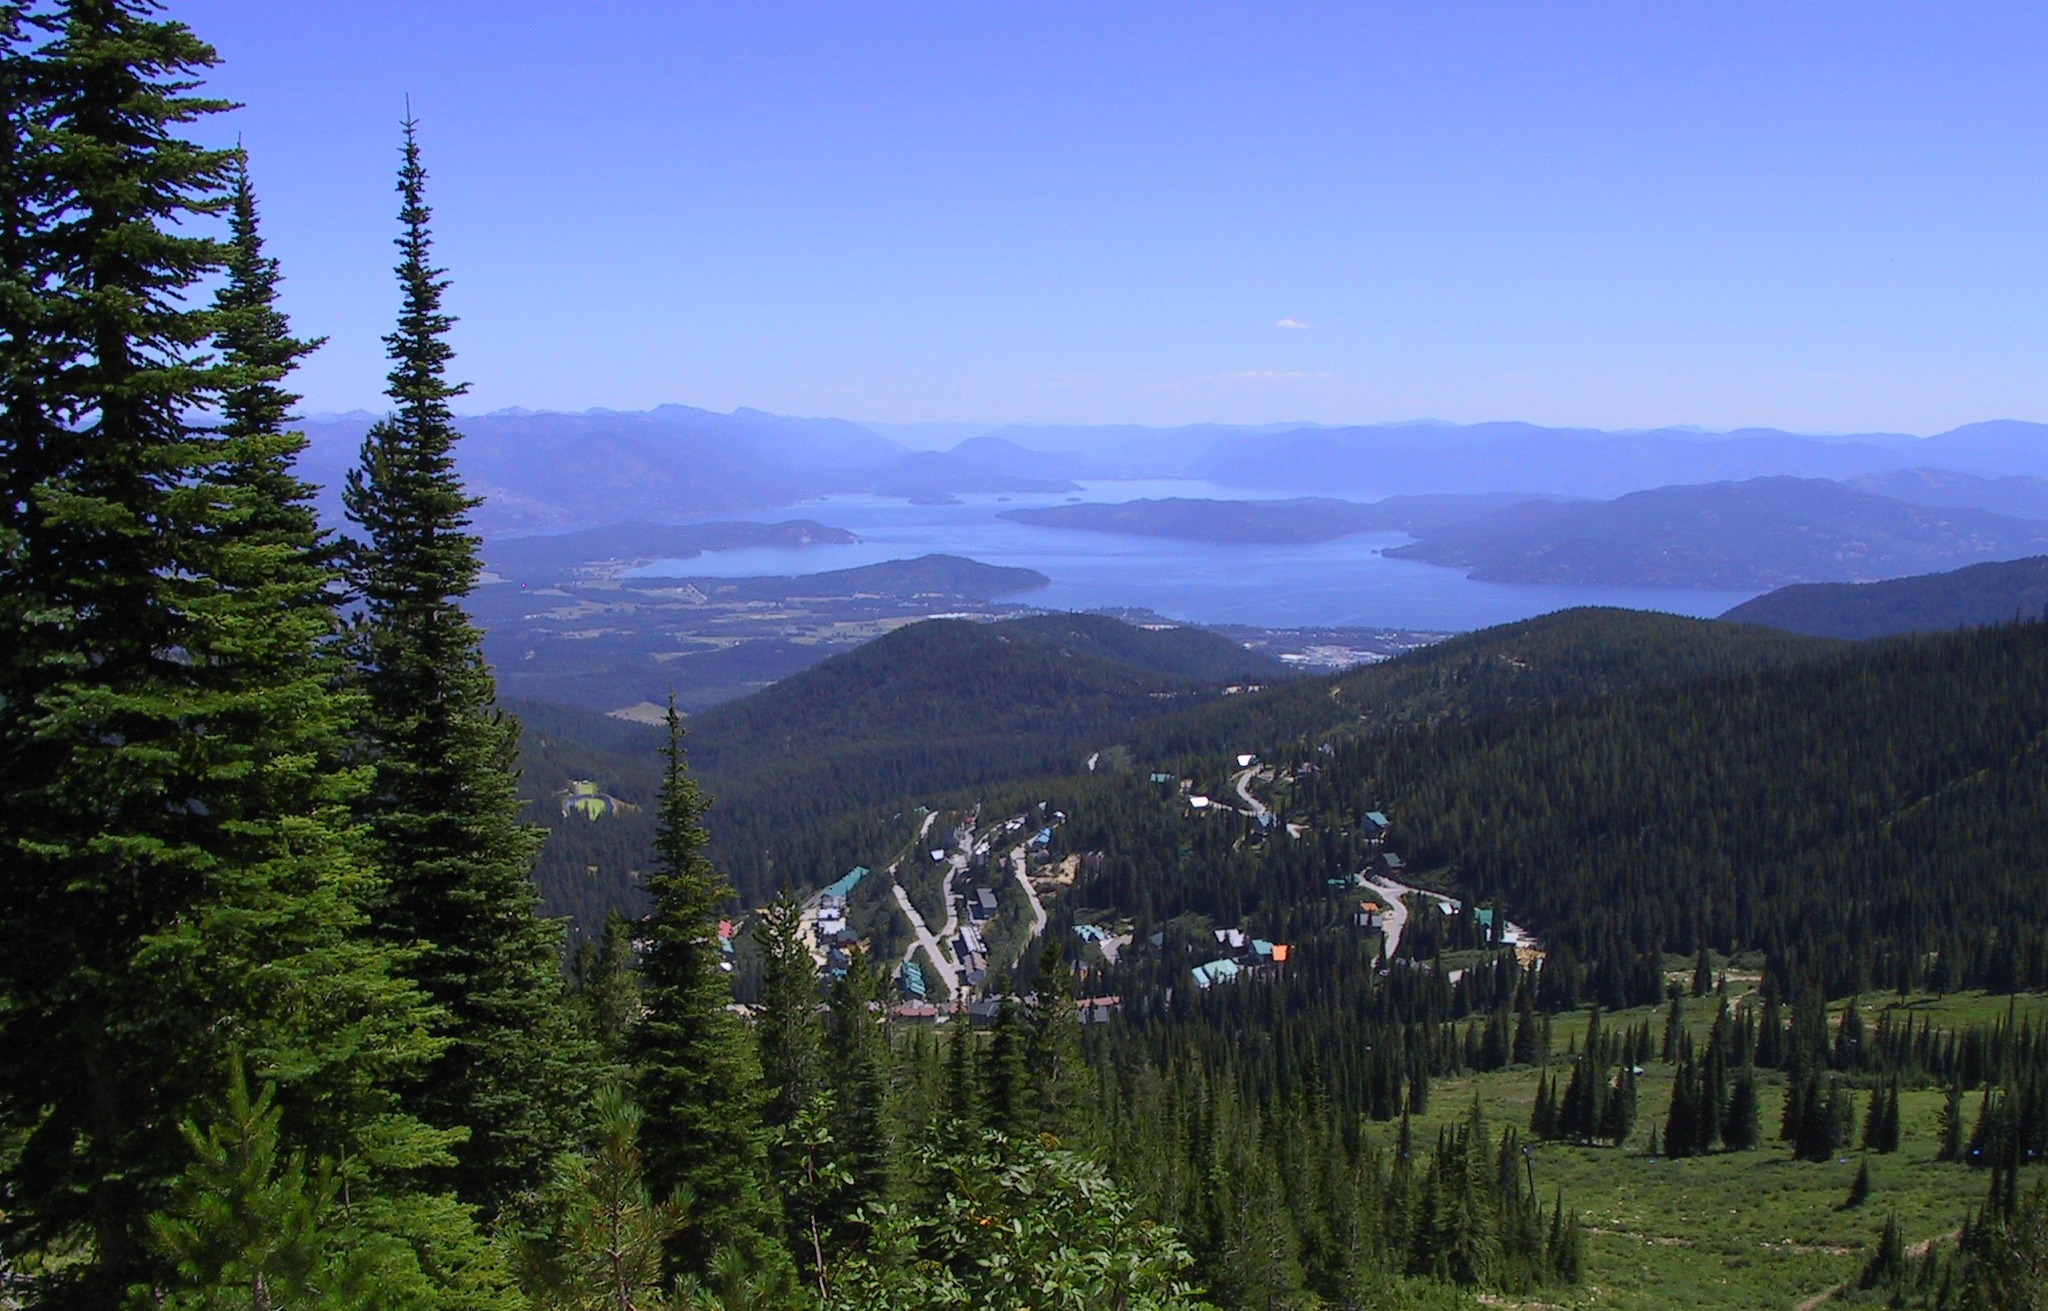 Sandpoint, Idaho. Photo by Alvin Feng (Creative Commons).